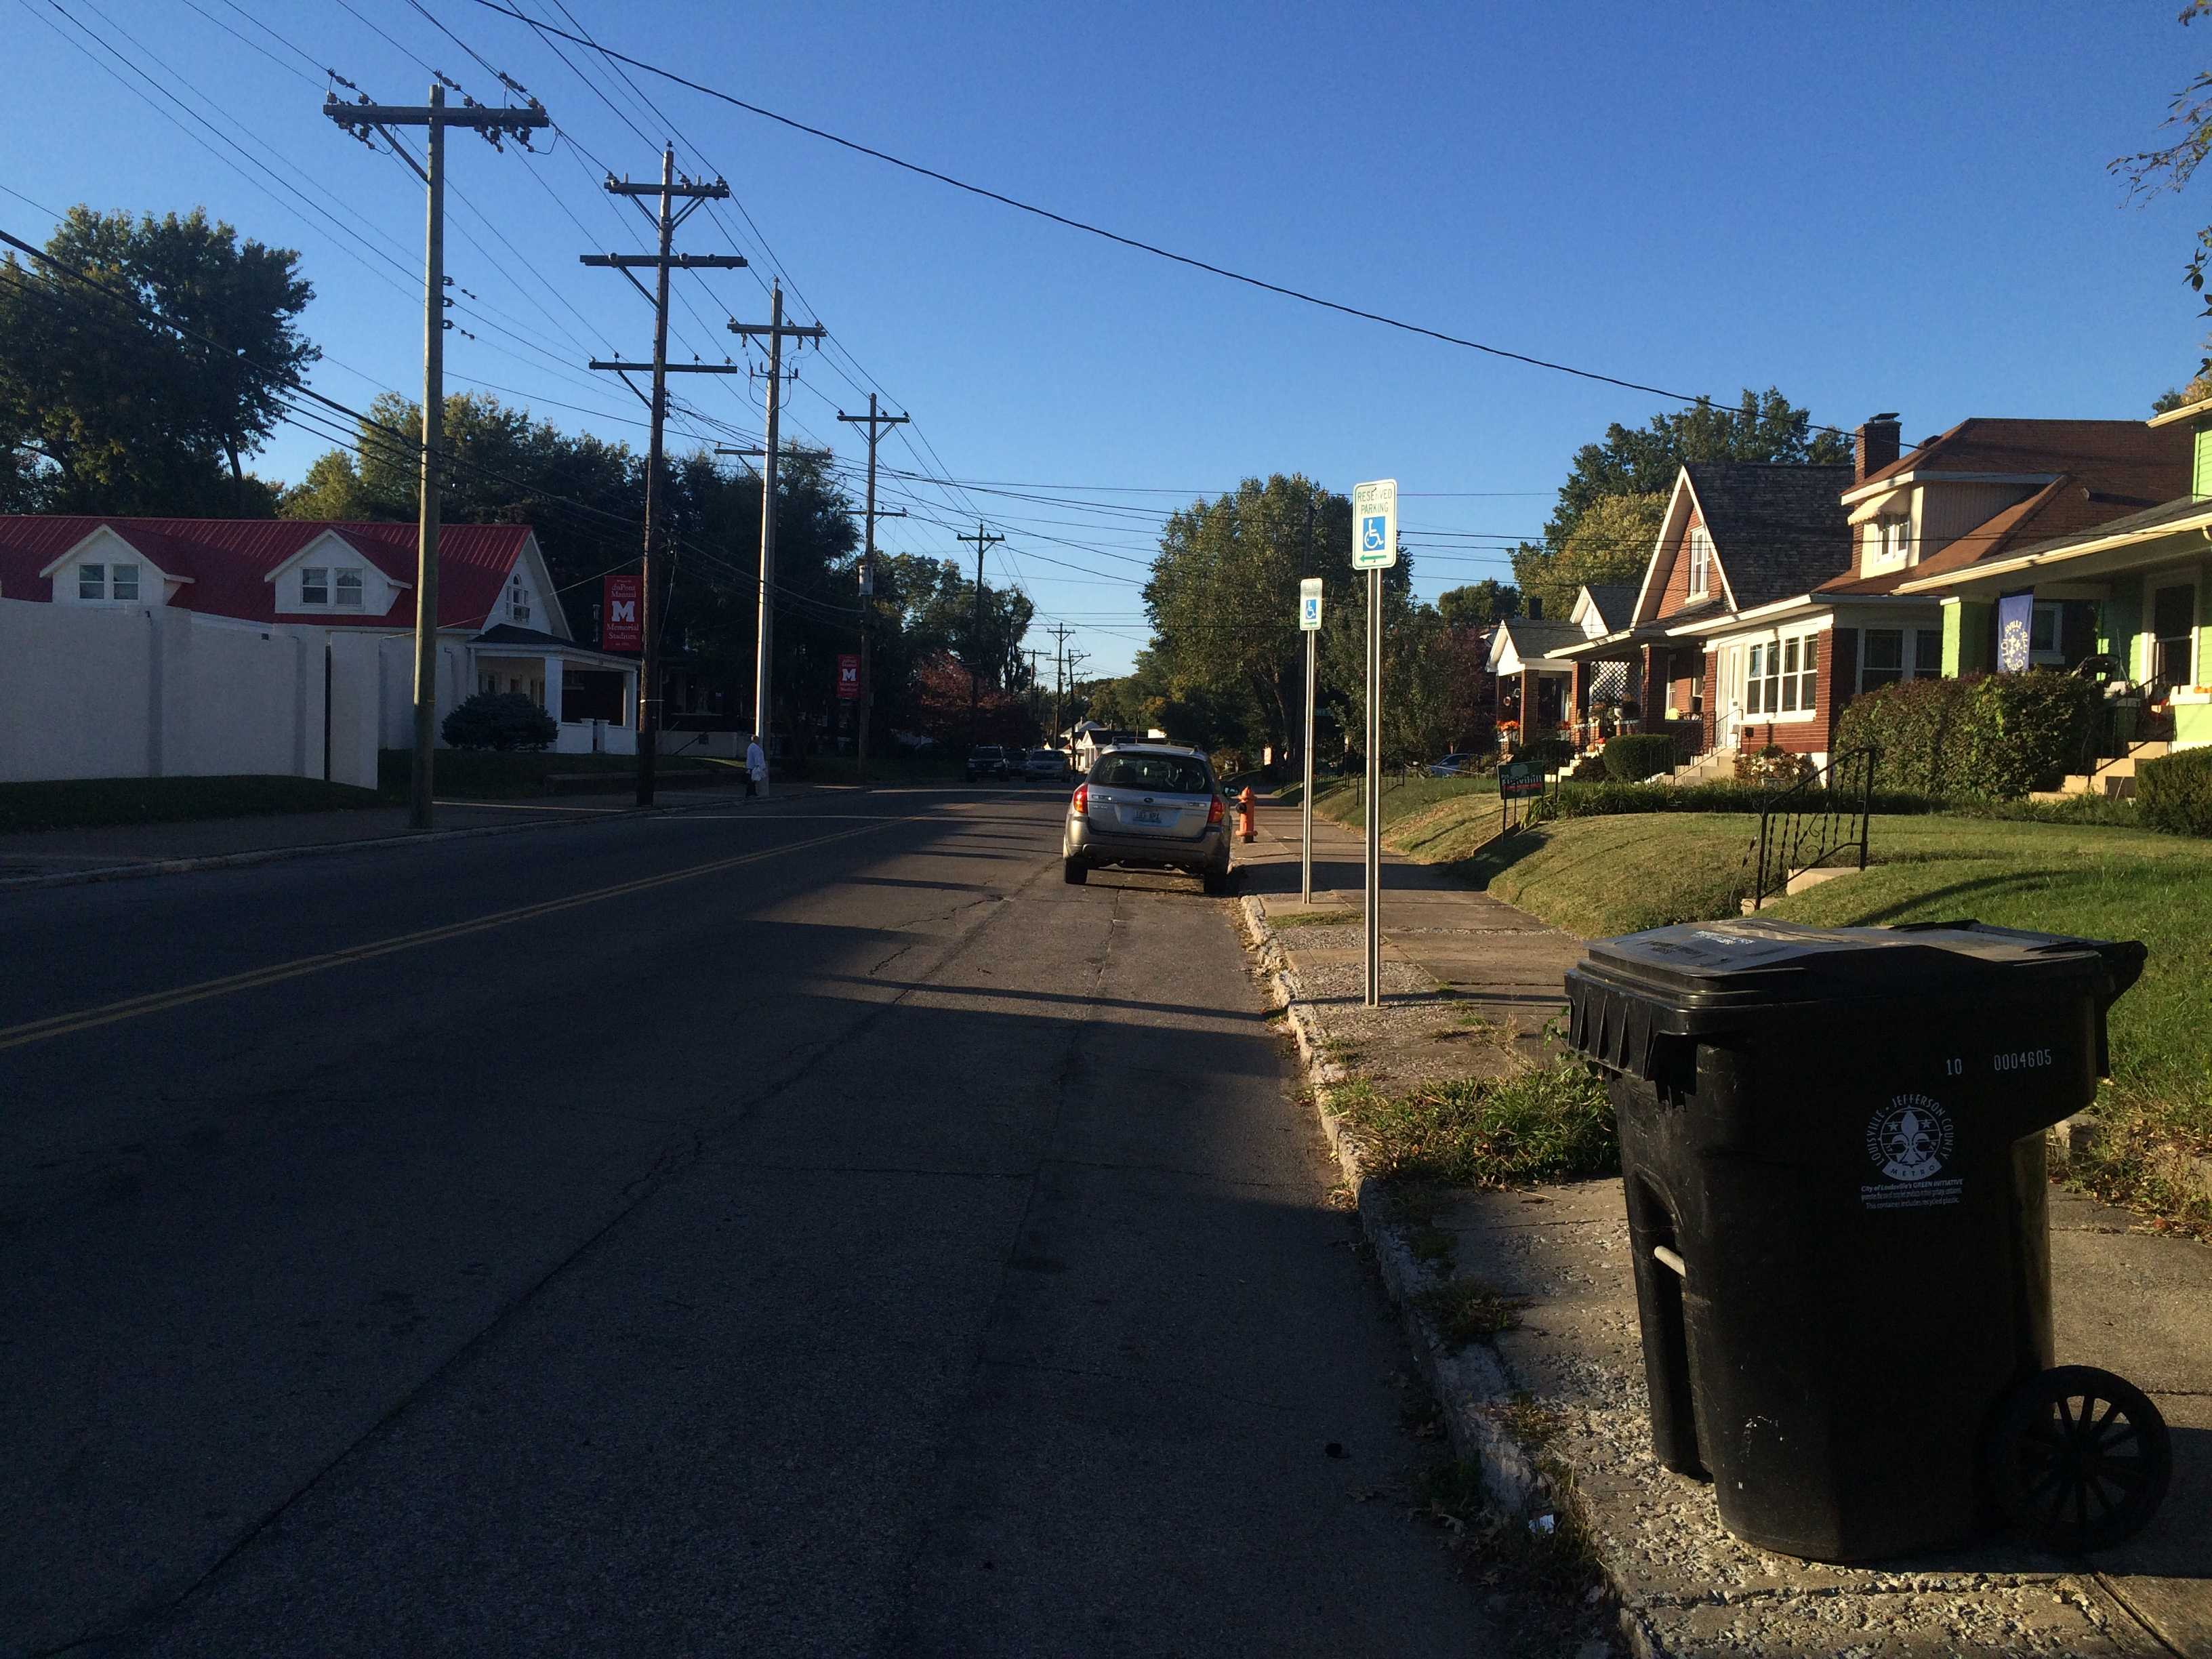 R/W Week: Old Rivalry takes toll on neighborhoods surrounding stadiums